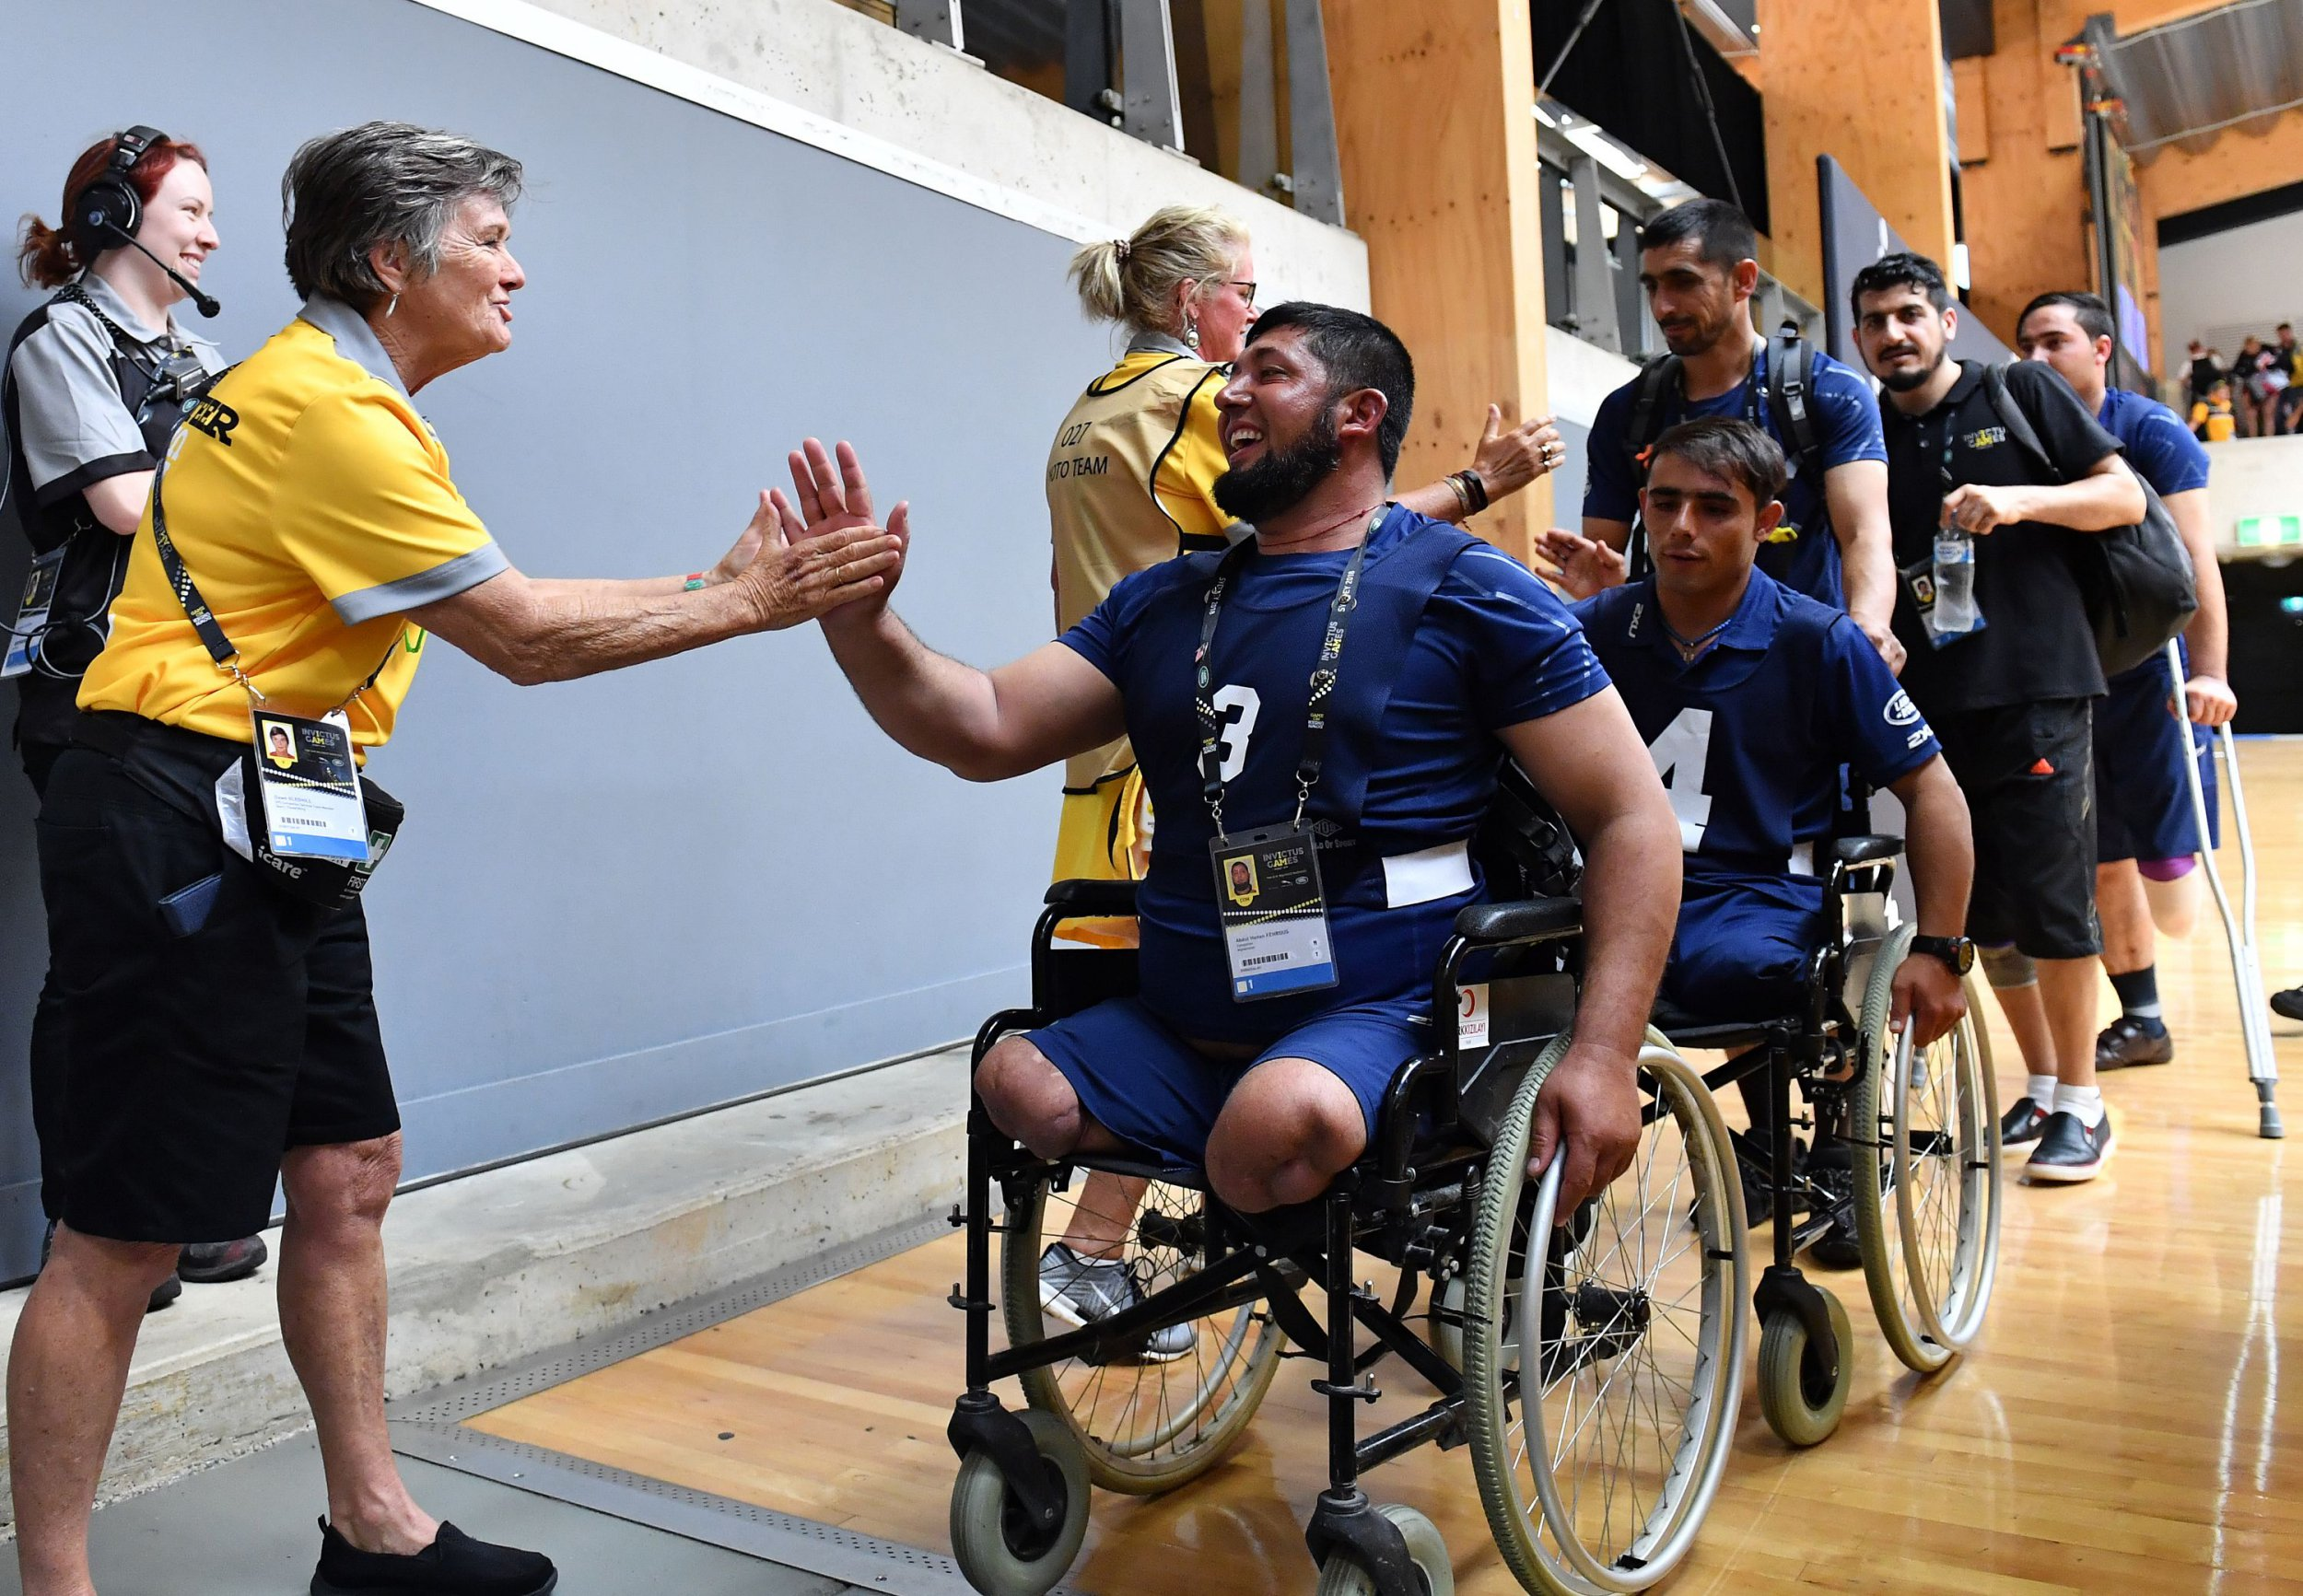 Afghanistan players leaves after a defeat against Jordan in their sitting volleyball match of the Invictus Games in Sydney on October 22, 2018. (Photo by SAEED KHAN / AFP) / IMAGE RESTRICTED TO EDITORIAL USE - STRICTLY NO COMMERCIAL USE (Photo credit should read SAEED KHAN/AFP/Getty Images)